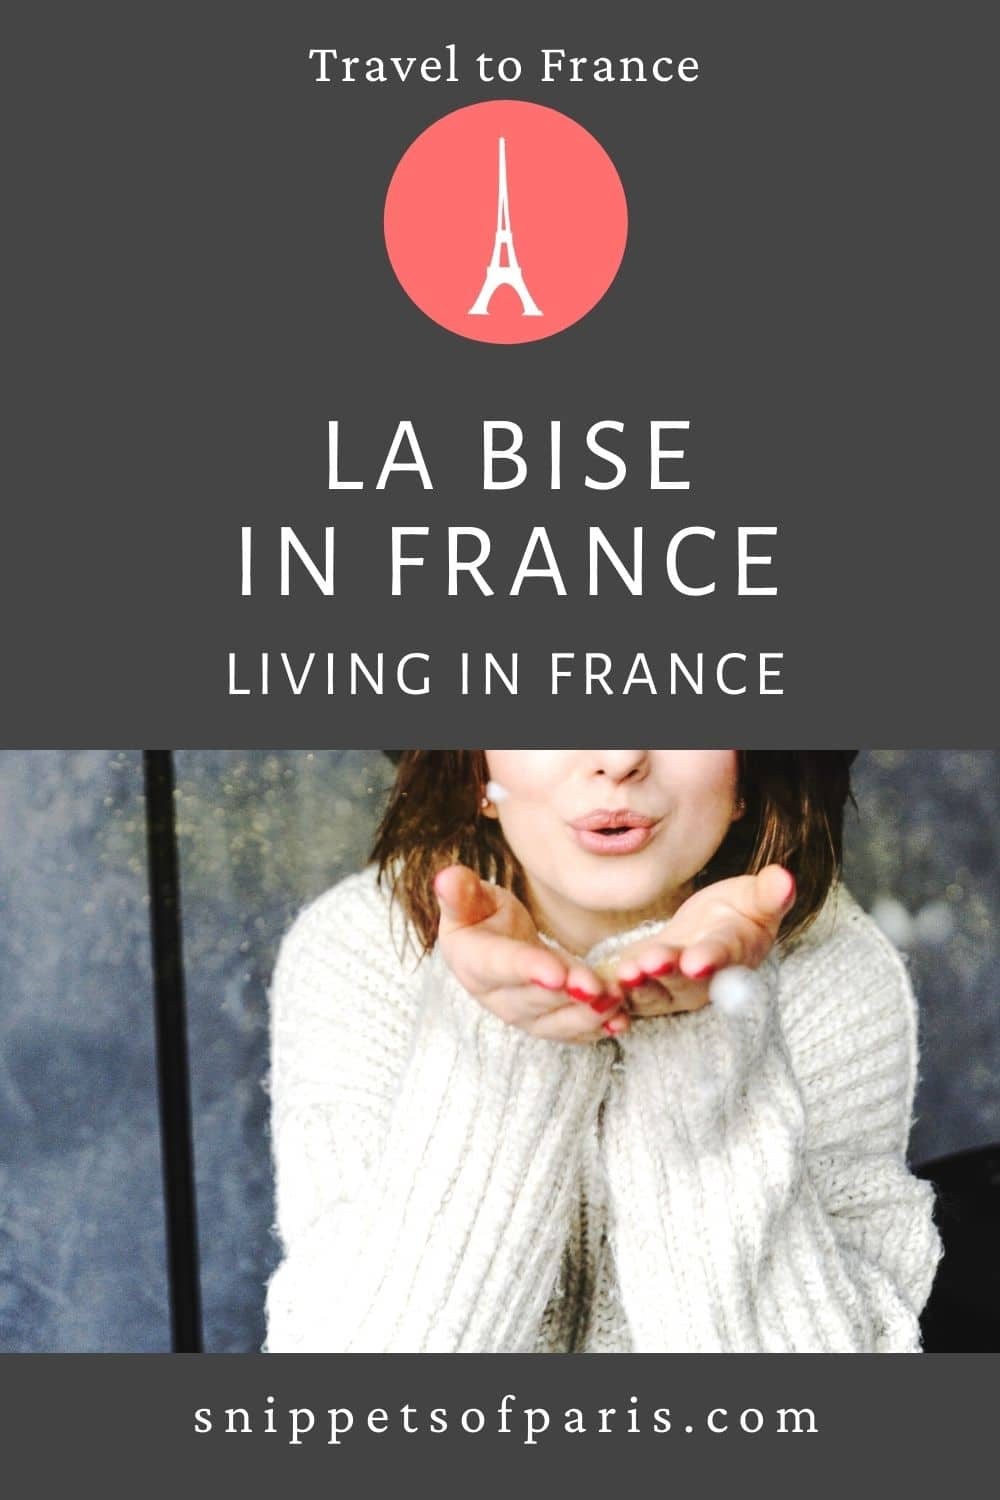 La bise in France (French Etiquette Guide)